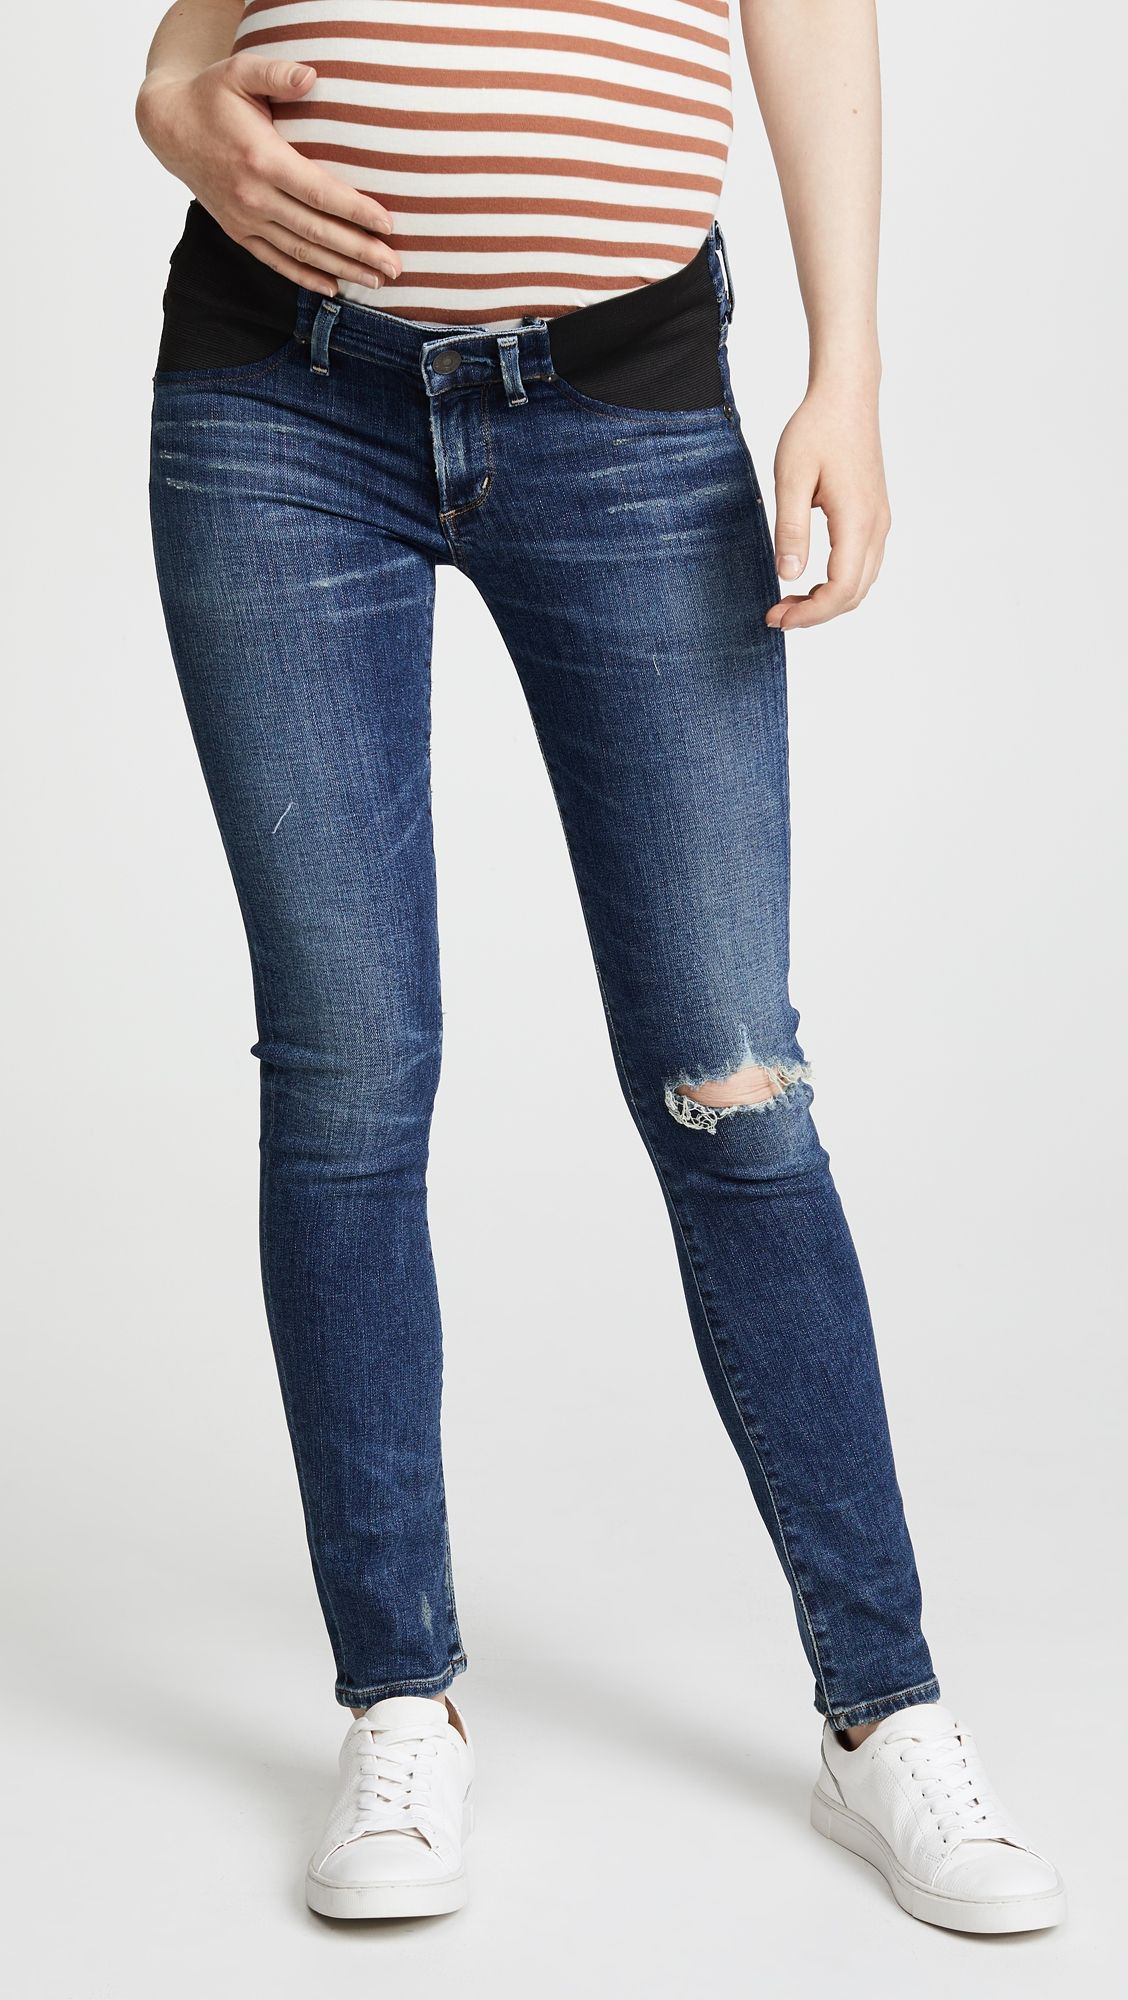 21831f0183c94 Citizens of Humanity Racer Ultra Maternity Skinny Jeans | Products ...